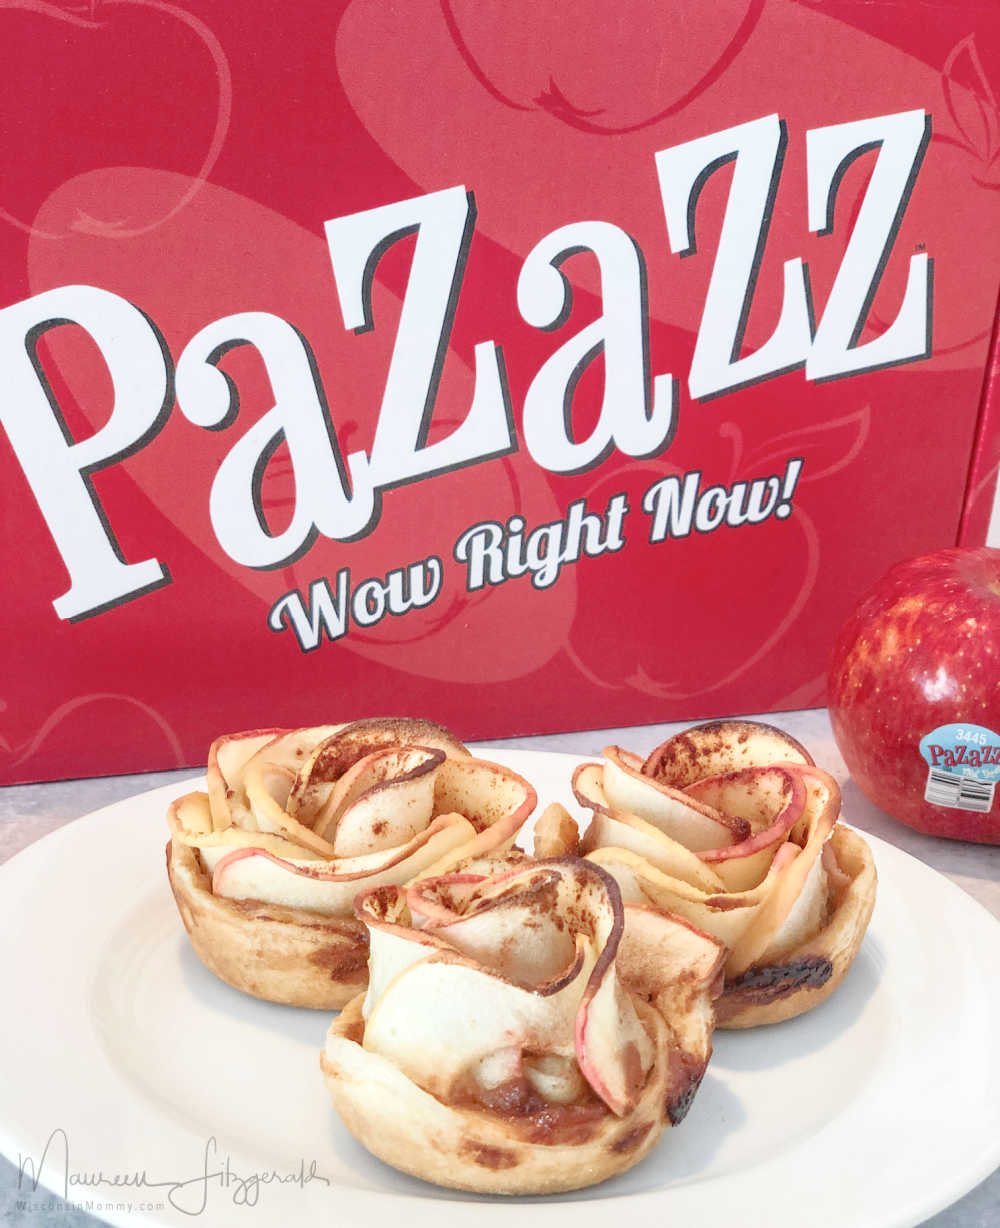 apple pastry dessert with pizazz apple box